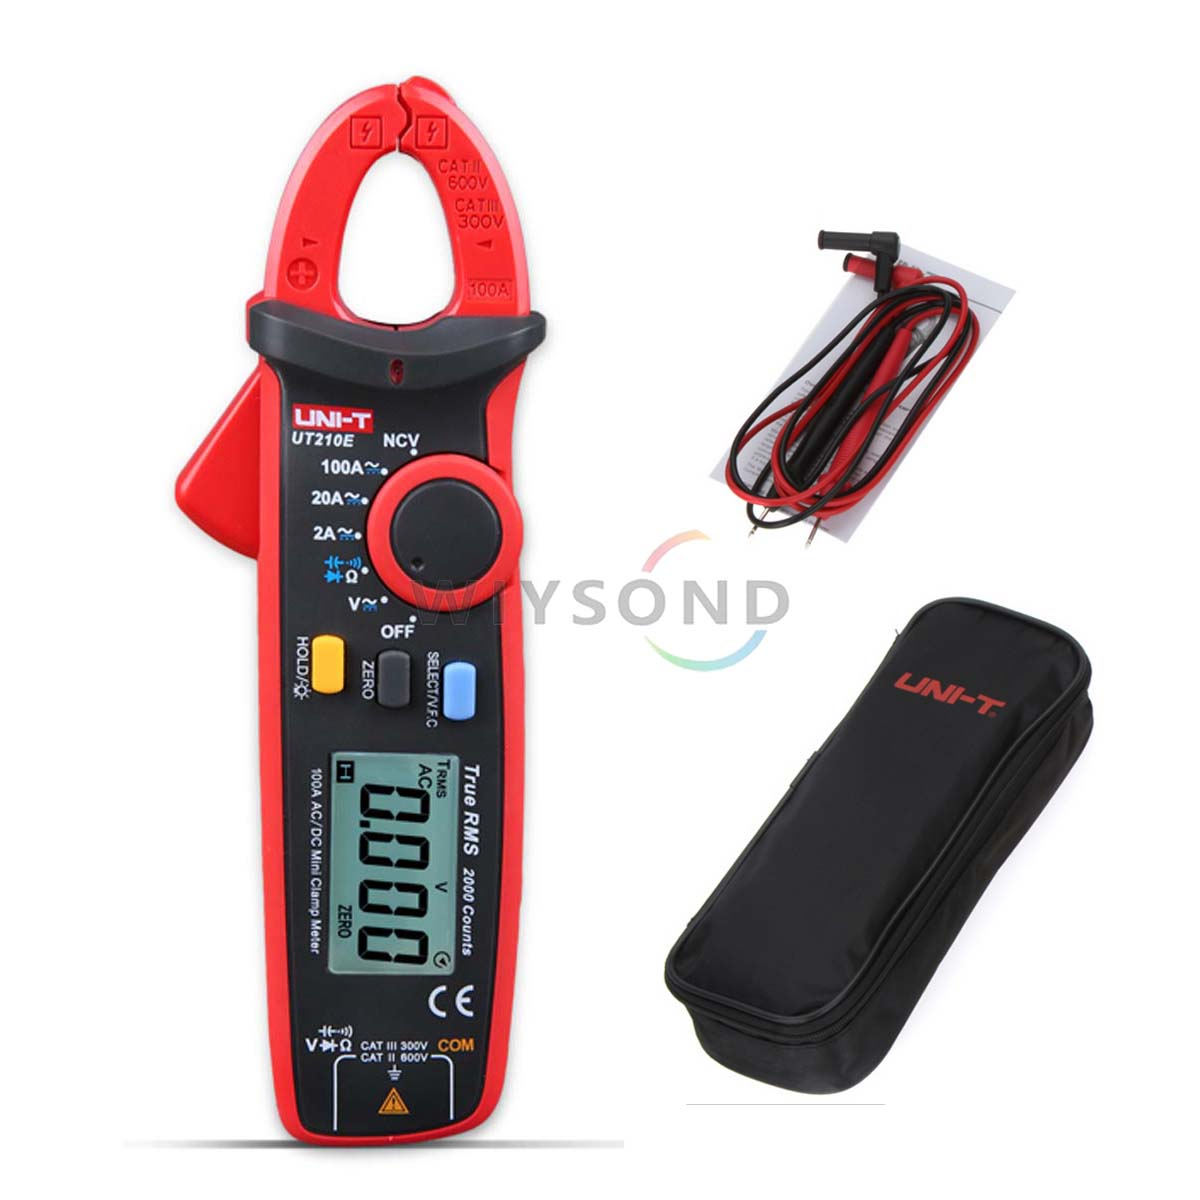 M077  UNI-T Mini Digital Clamp Meter UT210E Ture RMS Auto Range 2000 Count LCD Display Multimeters Megohmmeter Backlight uni t ut61b modern digital multimeters 3999 count auto power off temperature tester lcd backlight